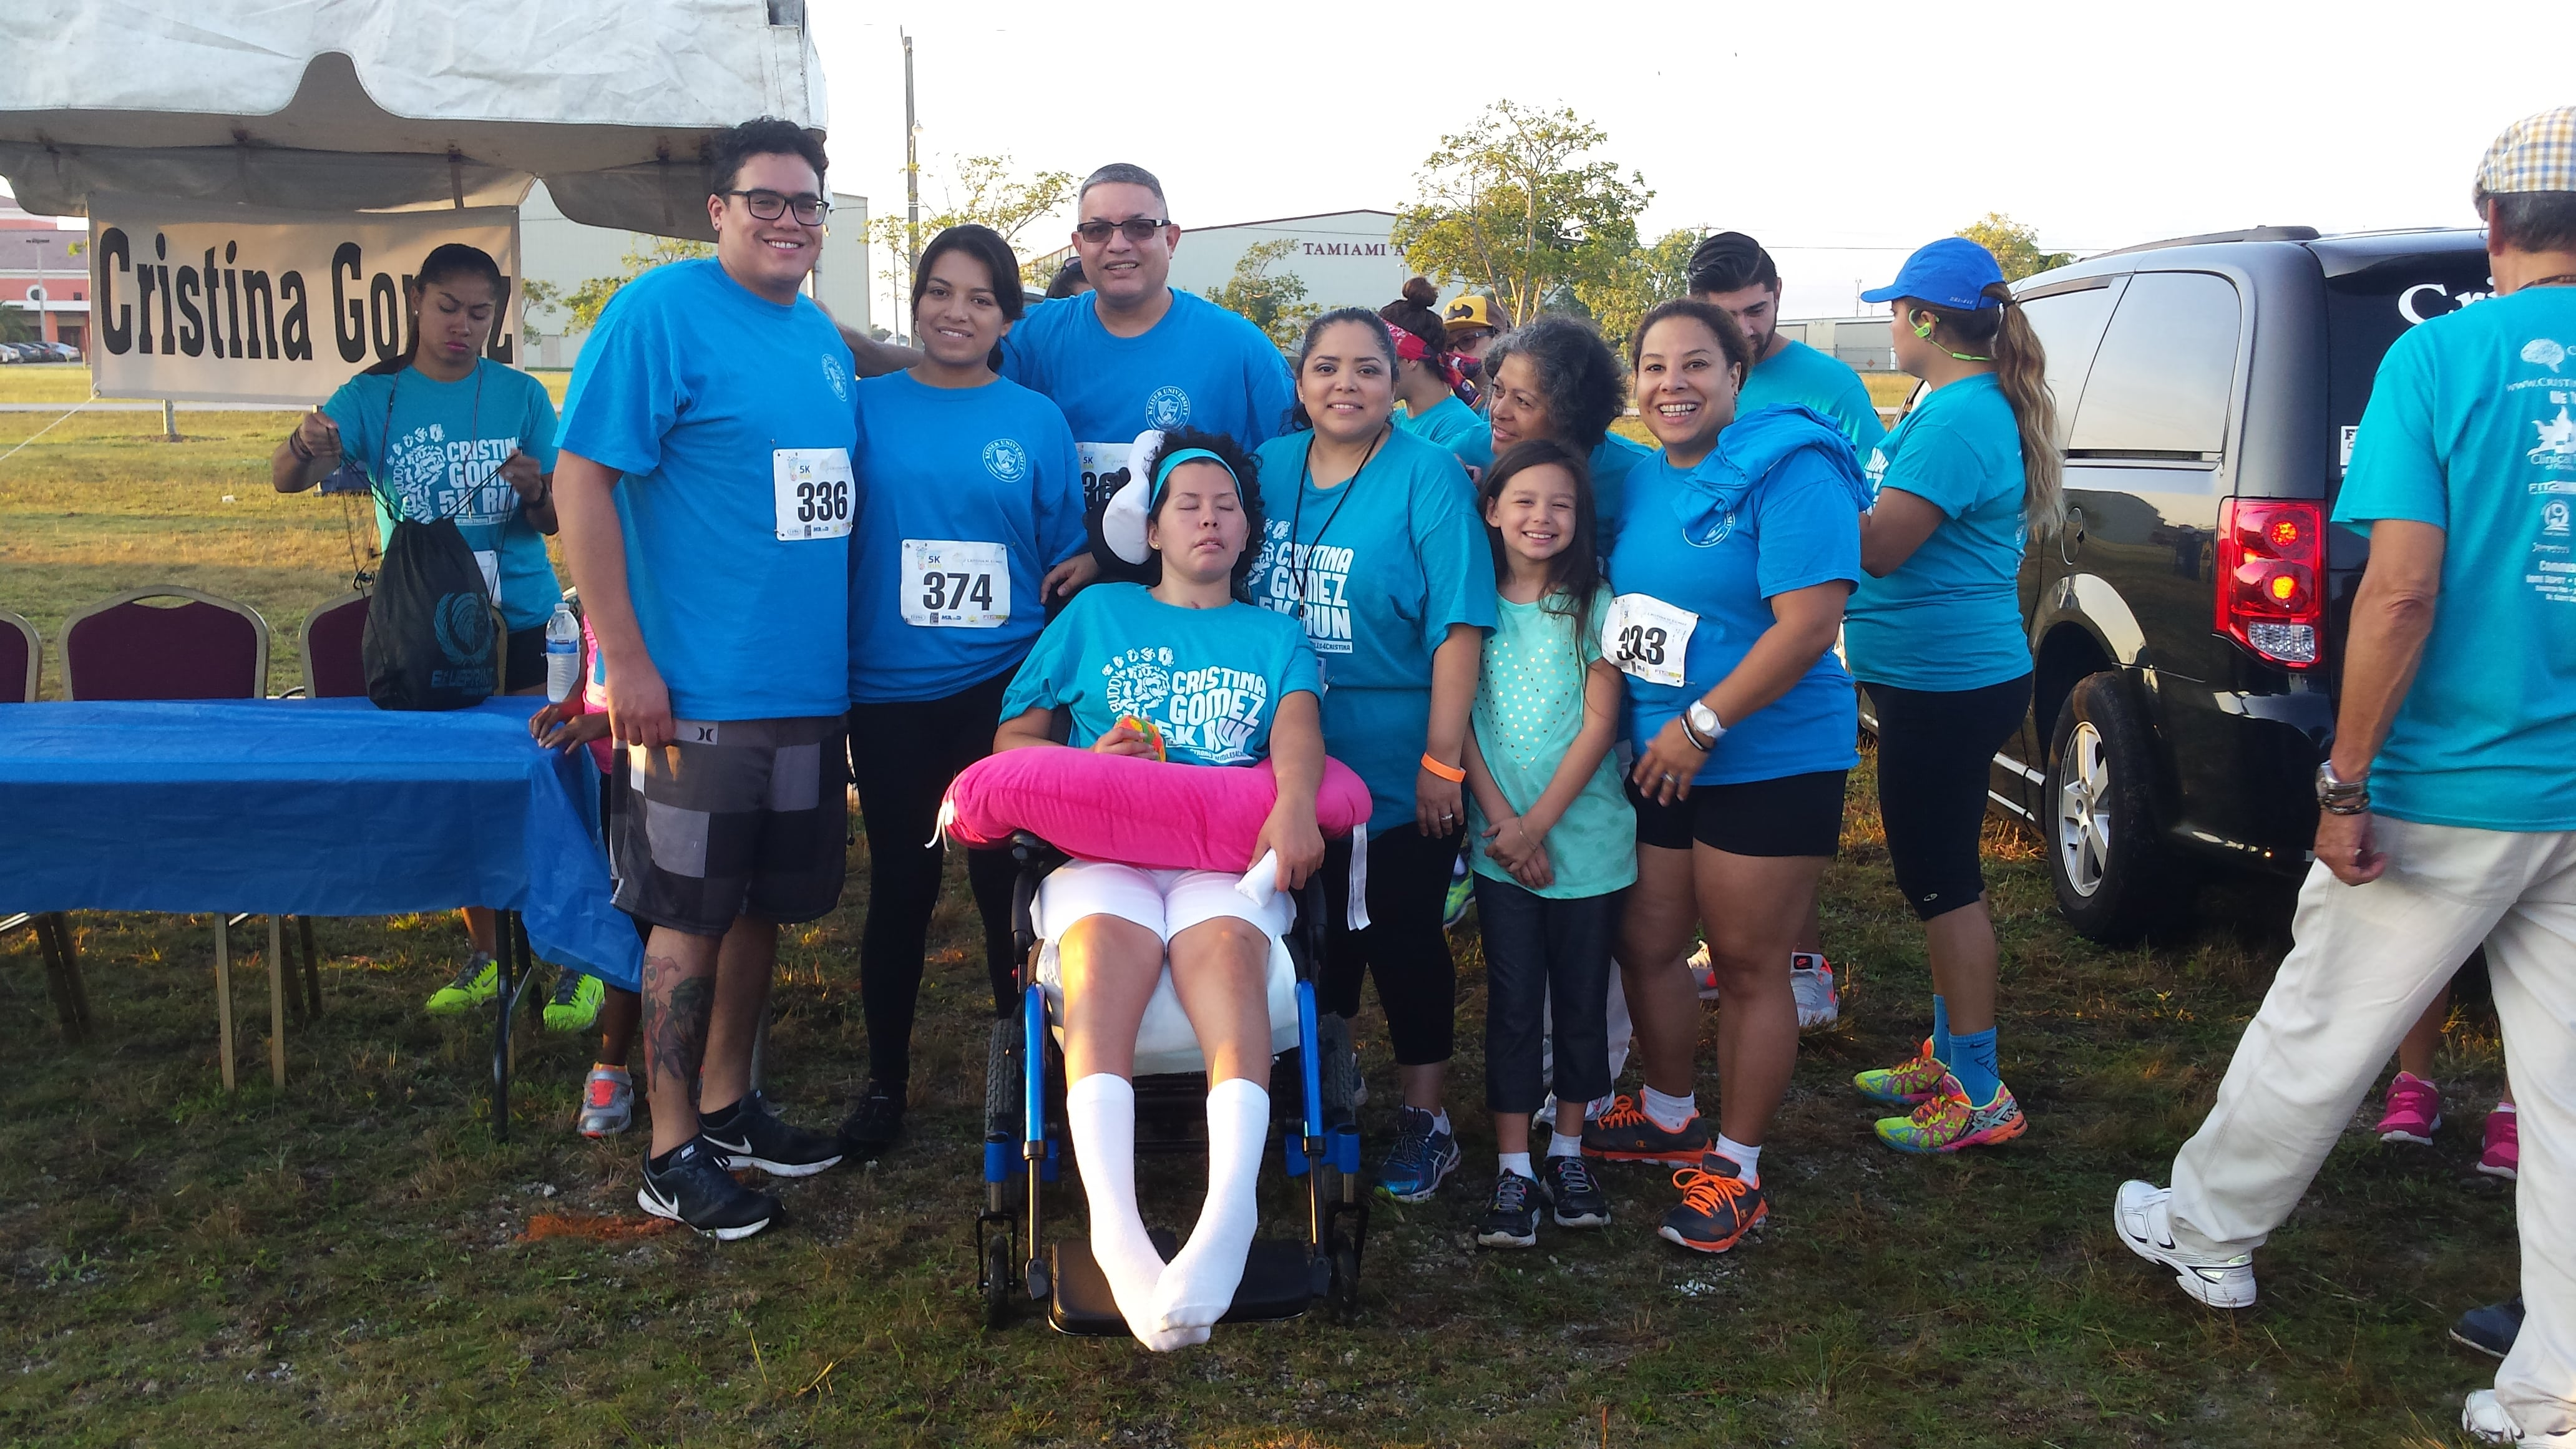 Miami Students Participate in the Cristina Gomez TBI Foundation 5K Run